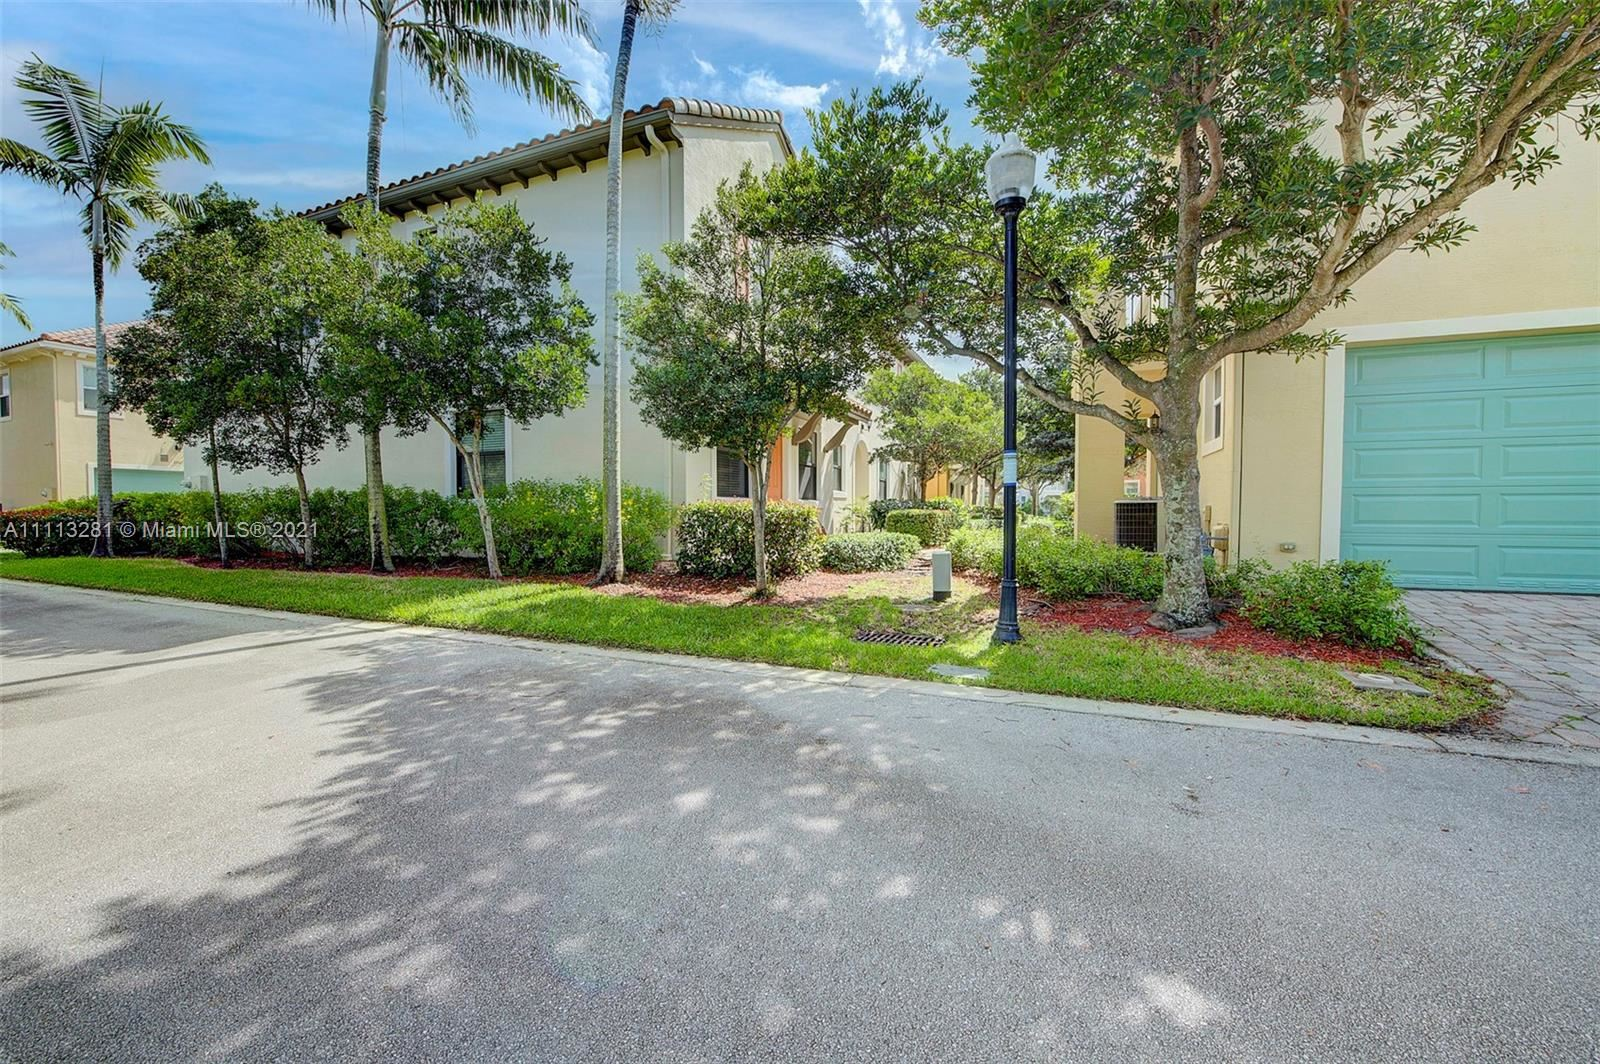 Photo of 3341 NW 126th Ave, Sunrise, FL 33323 (MLS # A11113281)